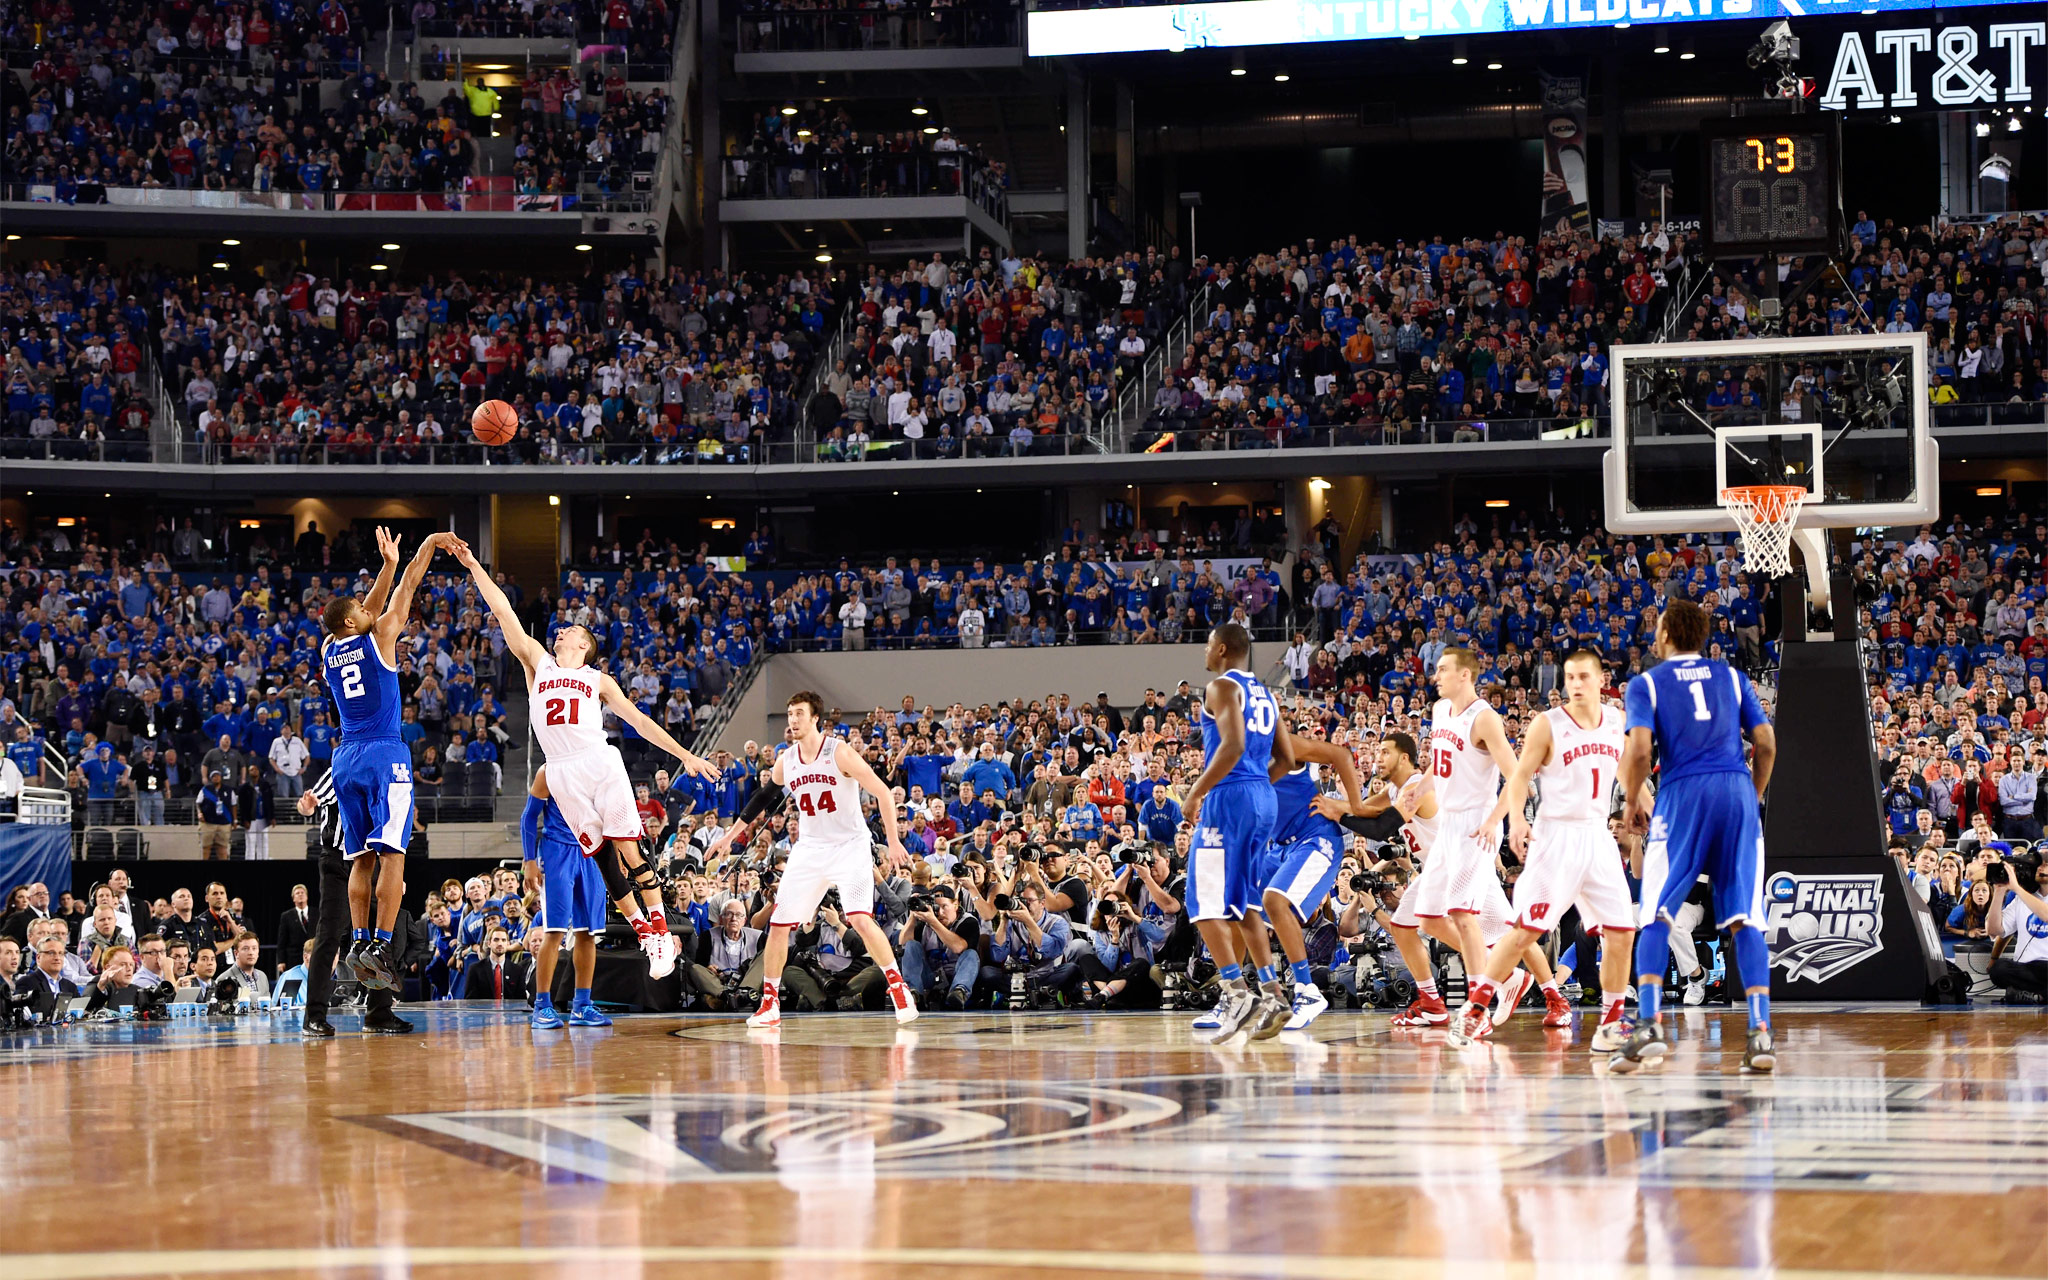 Aaron Harrison - 2014 NCAA Tournament: Final Four - ESPN